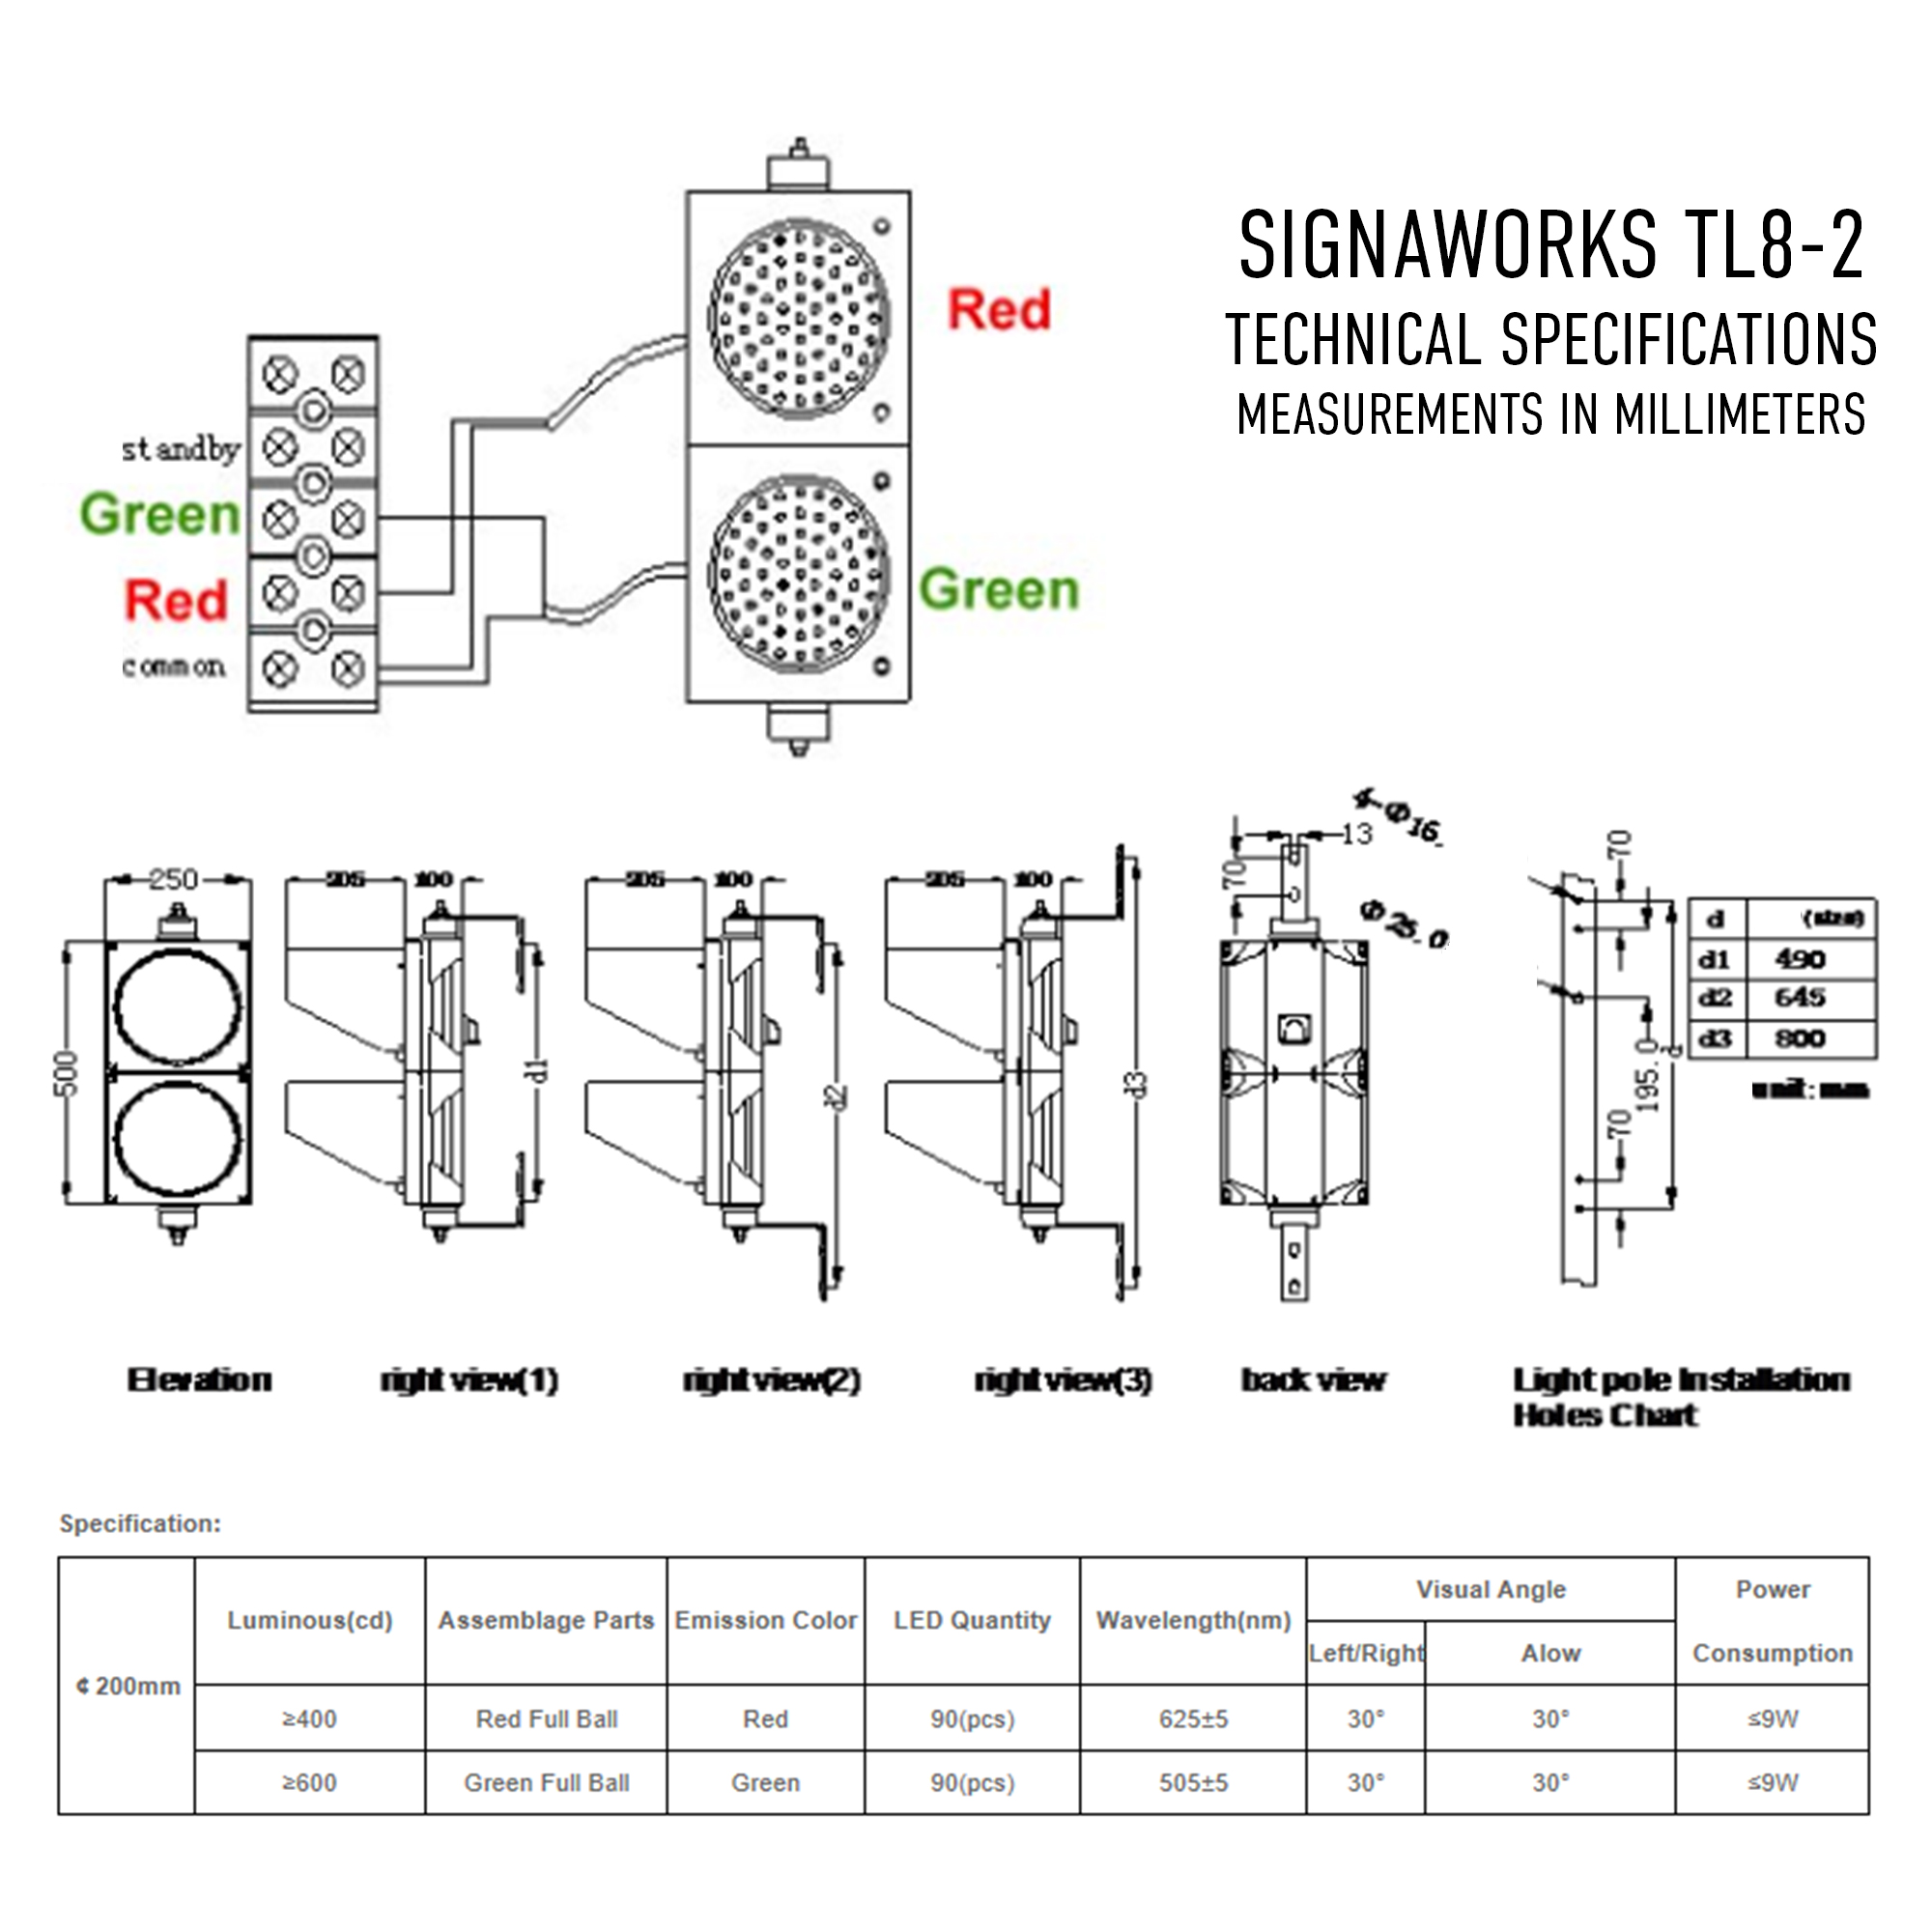 8 Inch Led Traffic Light Industrial Signaworks Trafficsignallightcontroldiagram3 Tl8 2 Technical Specifications